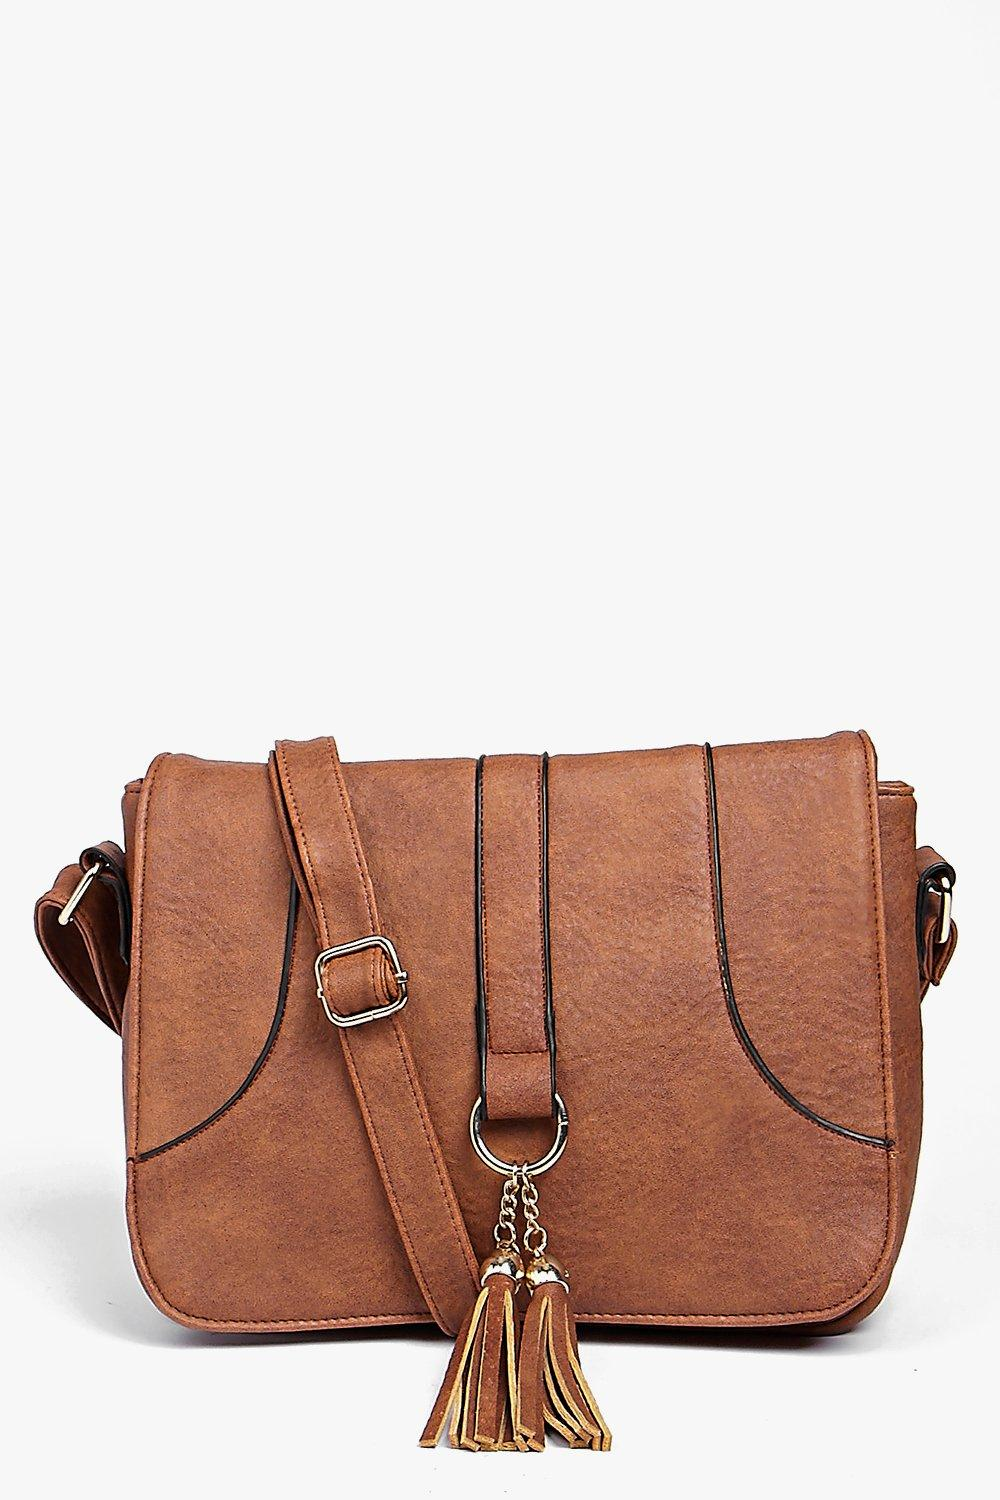 Loop And Tassel Saddle Cross Body Bag - tan - Mia